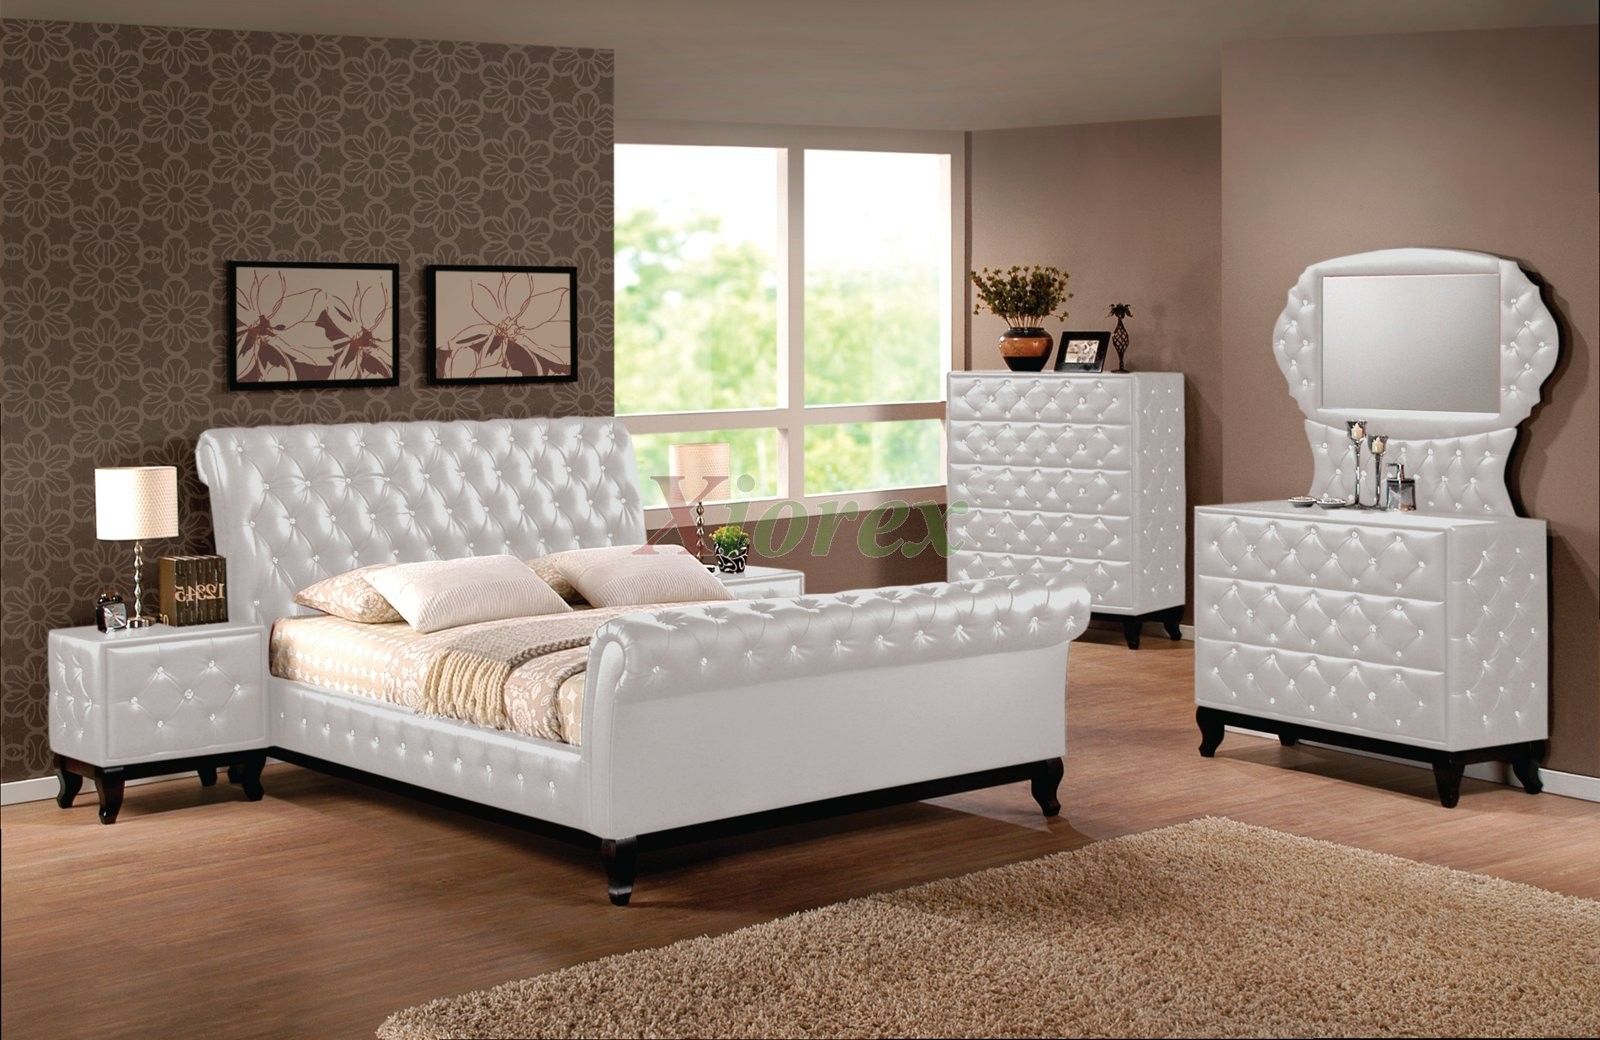 Upholstered sleigh platform bedroom furniture set 151 xiorex for Furniture bedroom sets